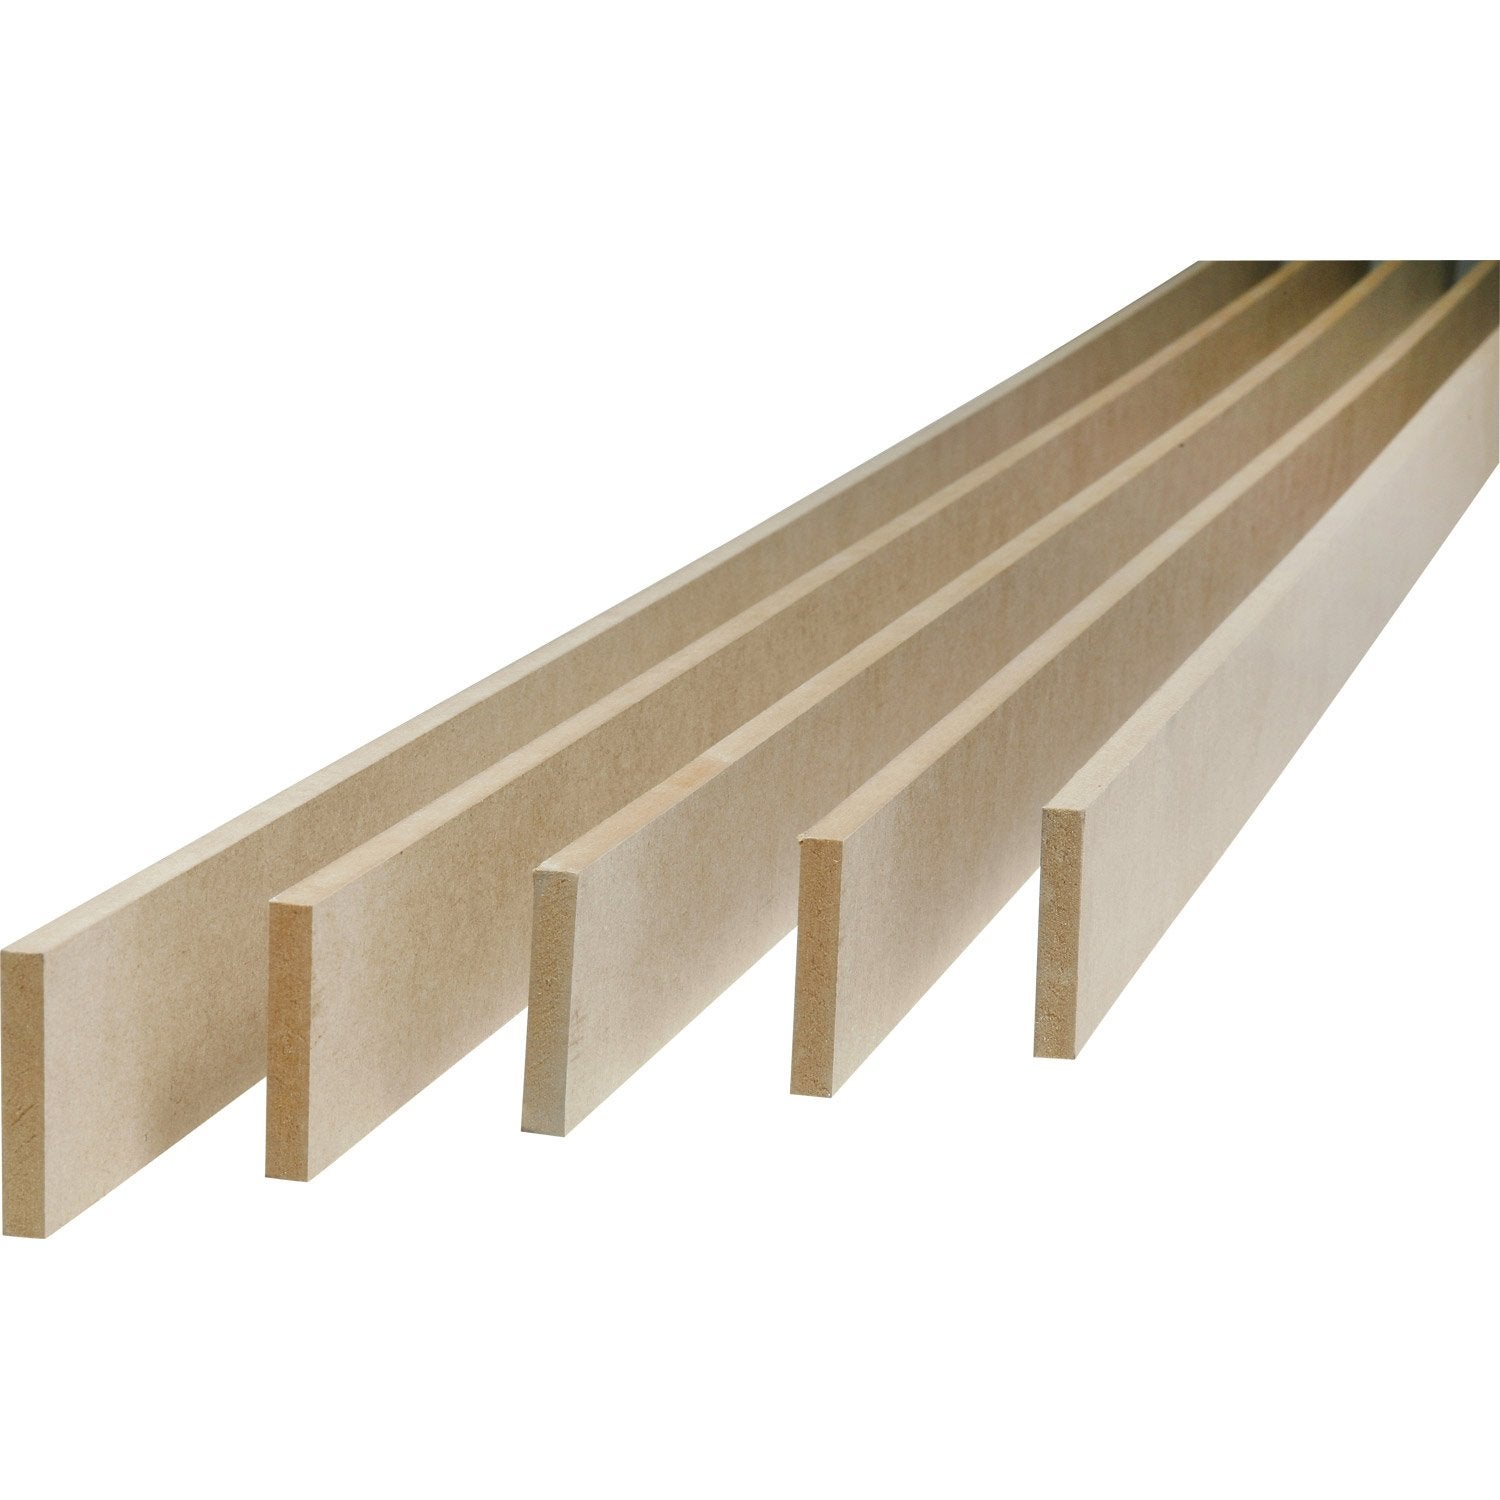 Lot de 5 plinthes m dium mdf r versibles 9 x 100 mm l 2 m leroy merlin - Bois de coffrage leroy merlin ...